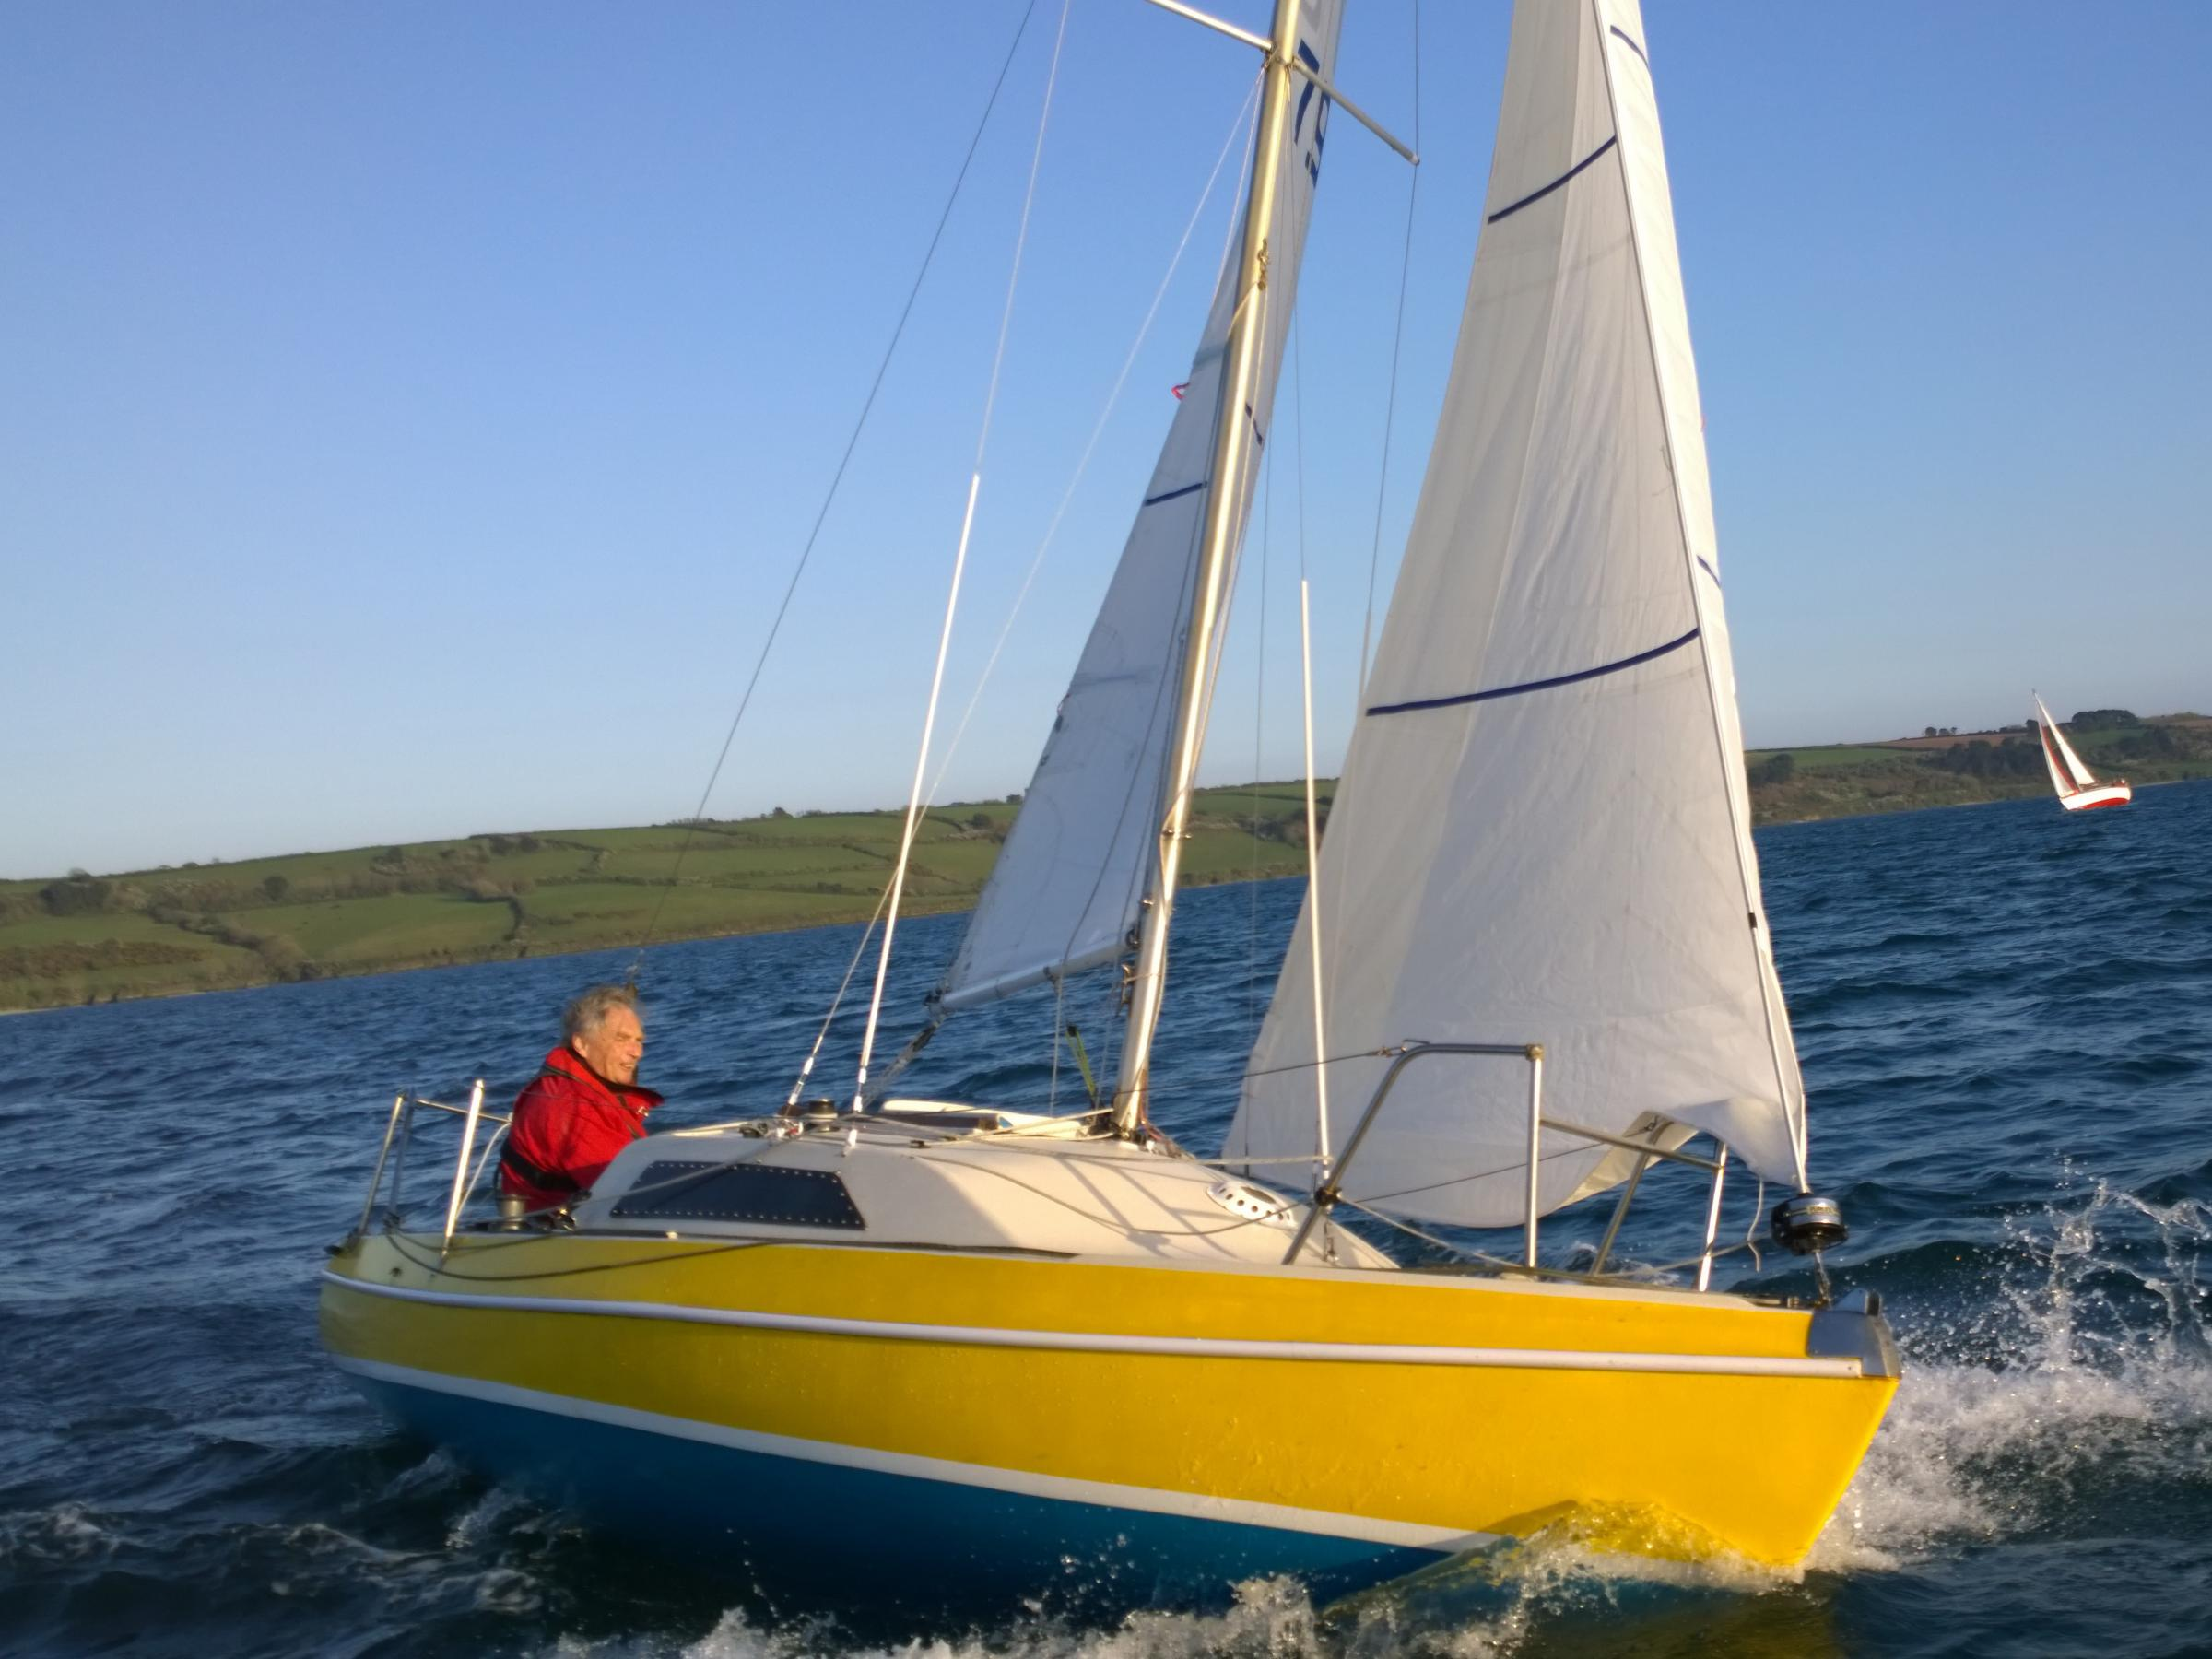 Rococo (above), manned by Clive Hoyle, which won the Q class race at Mylor Yacht Club at the weekend